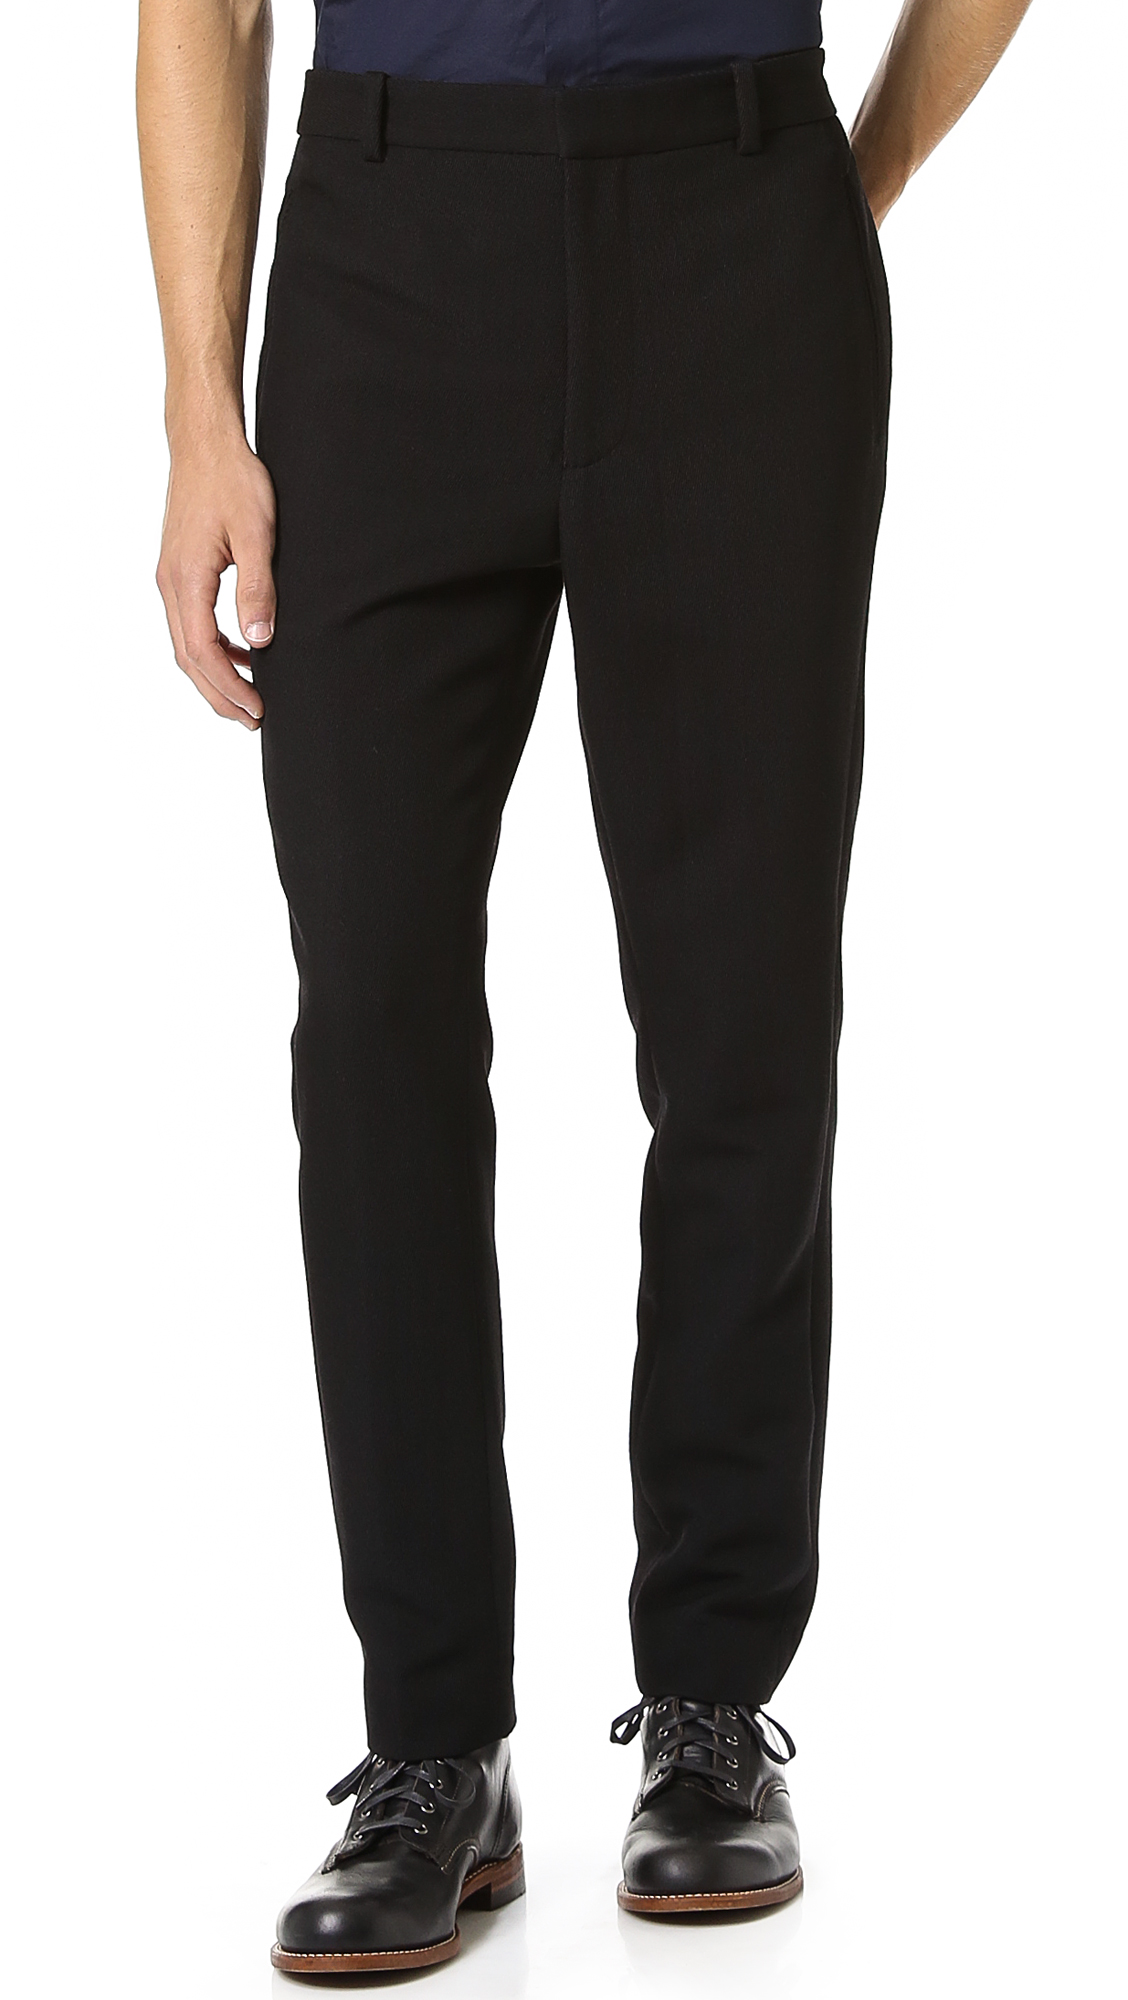 Slim Black Dress Pants | Pant So